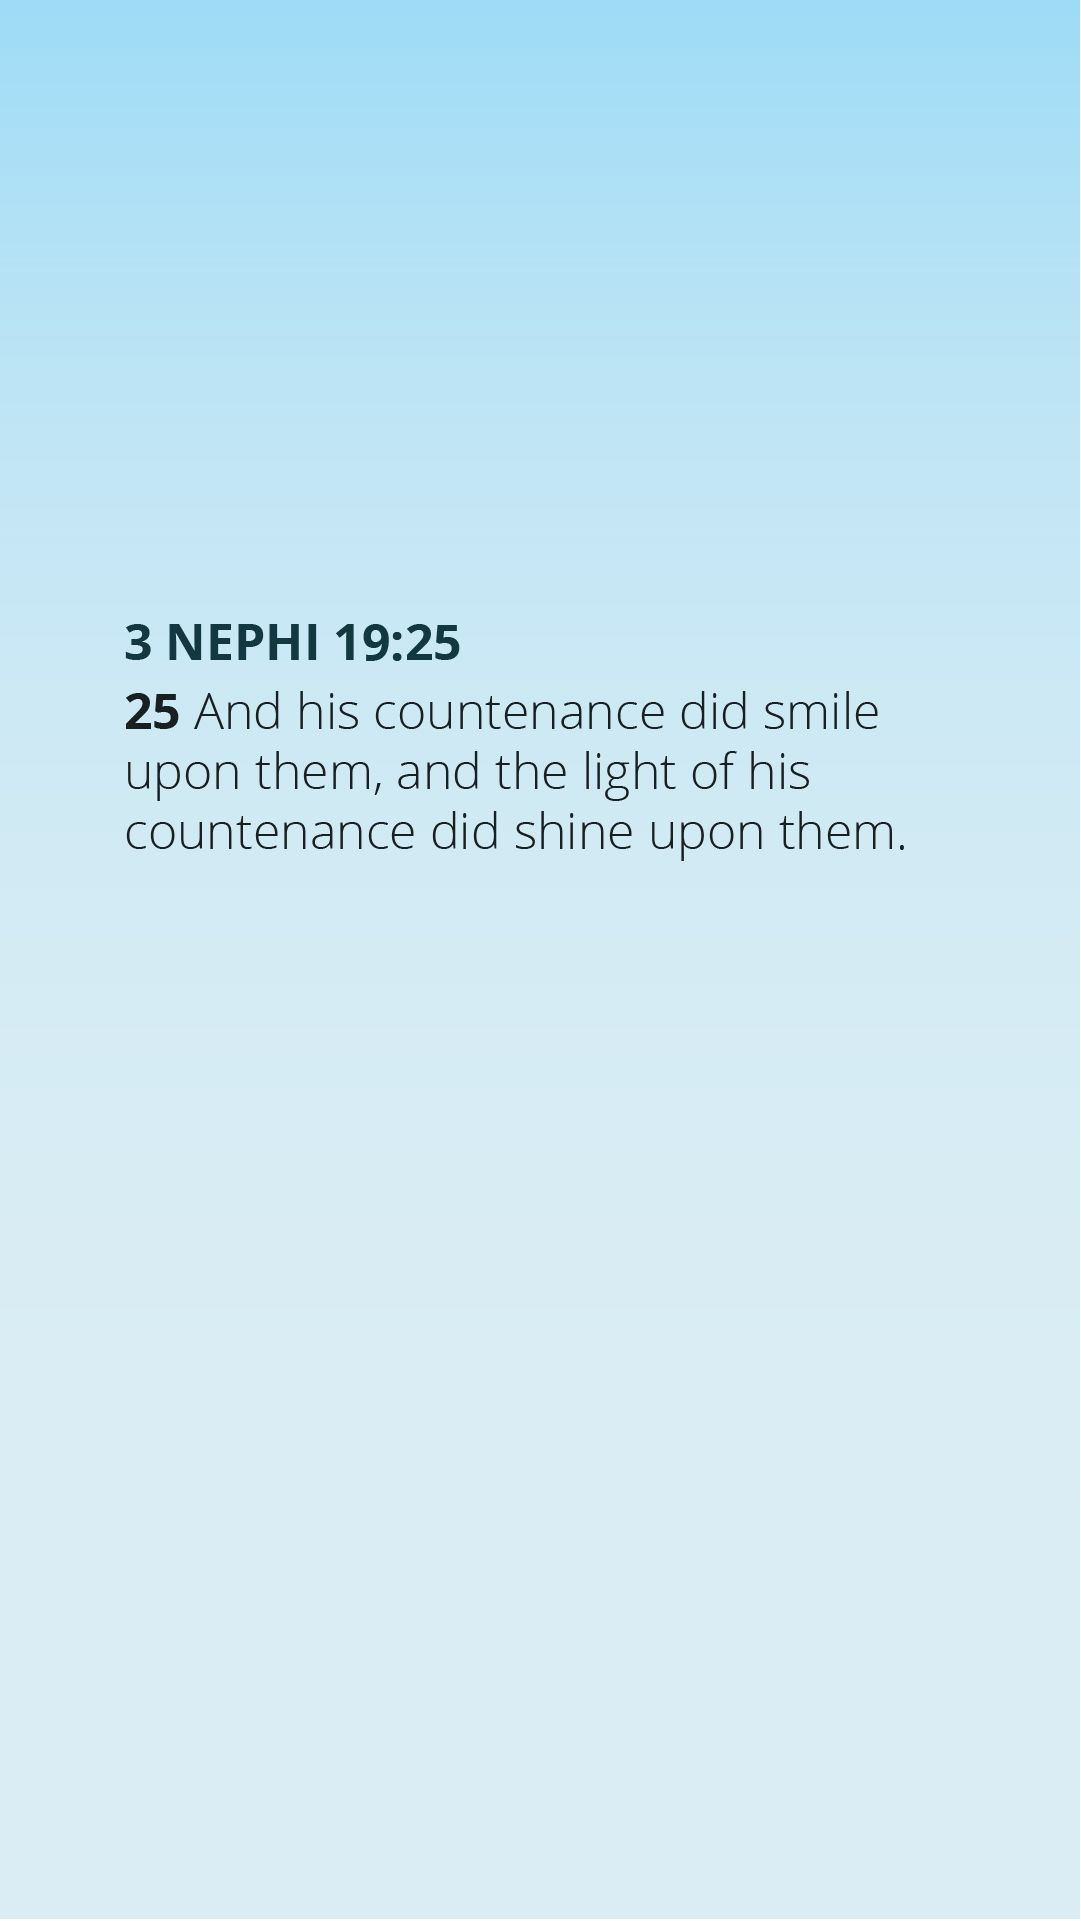 """""""His countenance did smile upon them, and the light of his countenance did shine upon them."""" — 3Nephi 19:25"""